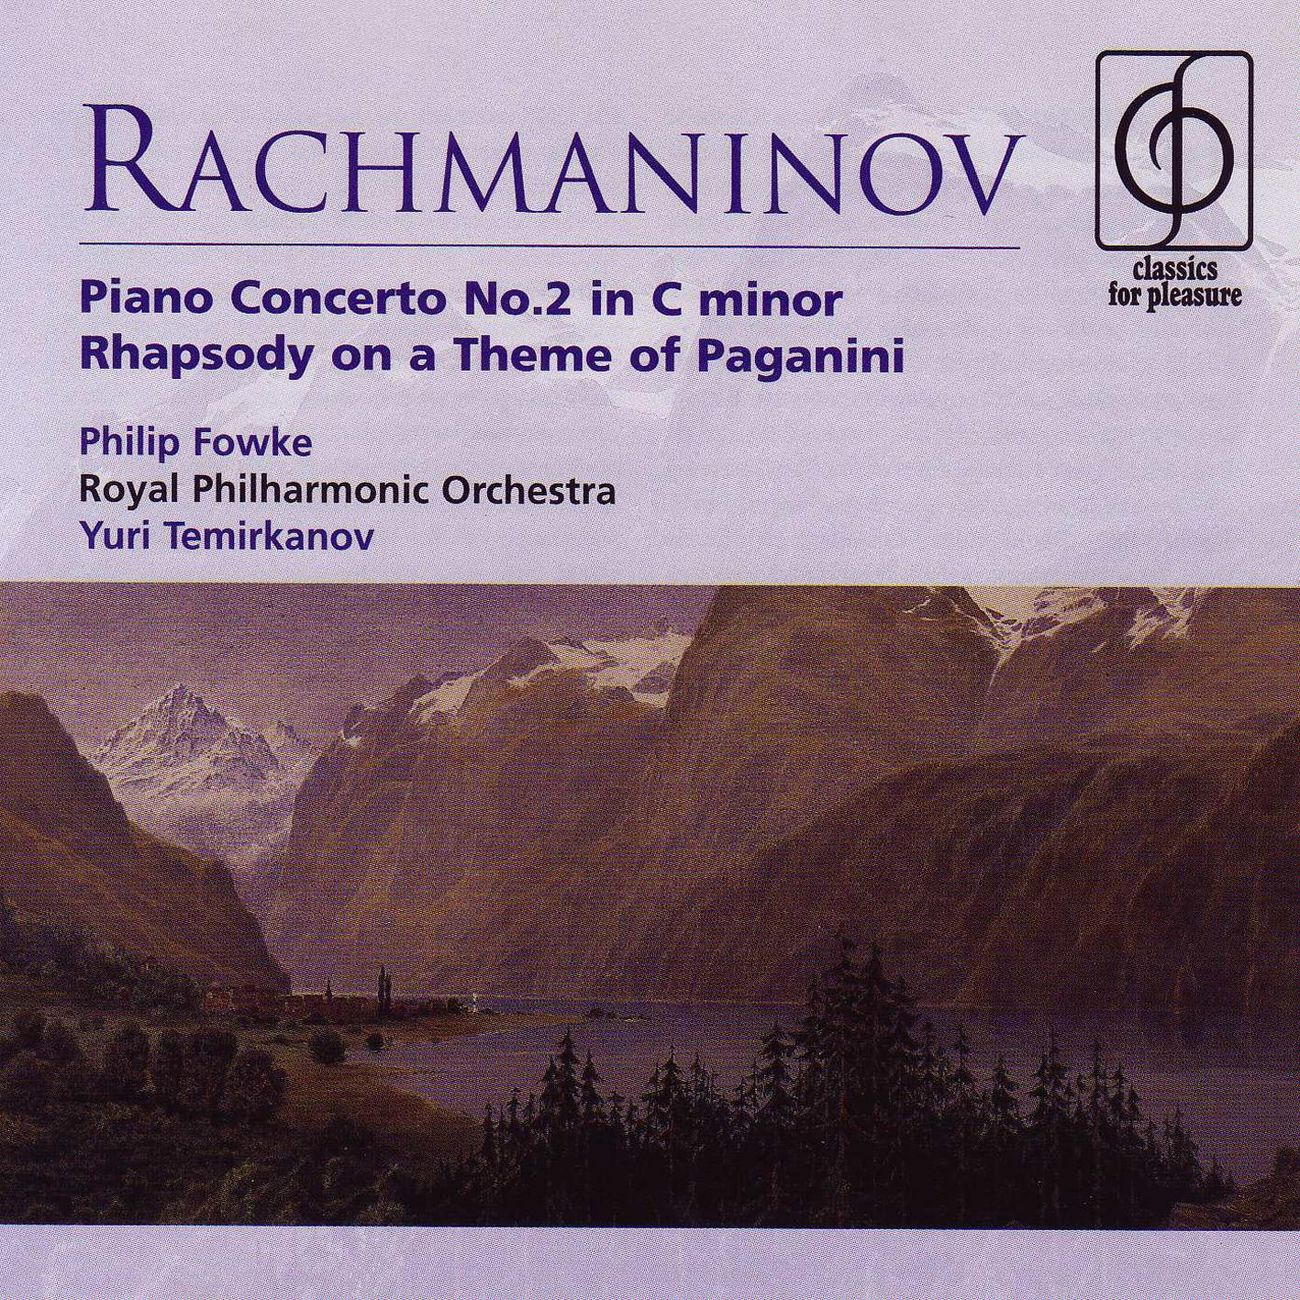 Rhapsody on a Theme of Paganini Op. 43: Variation III